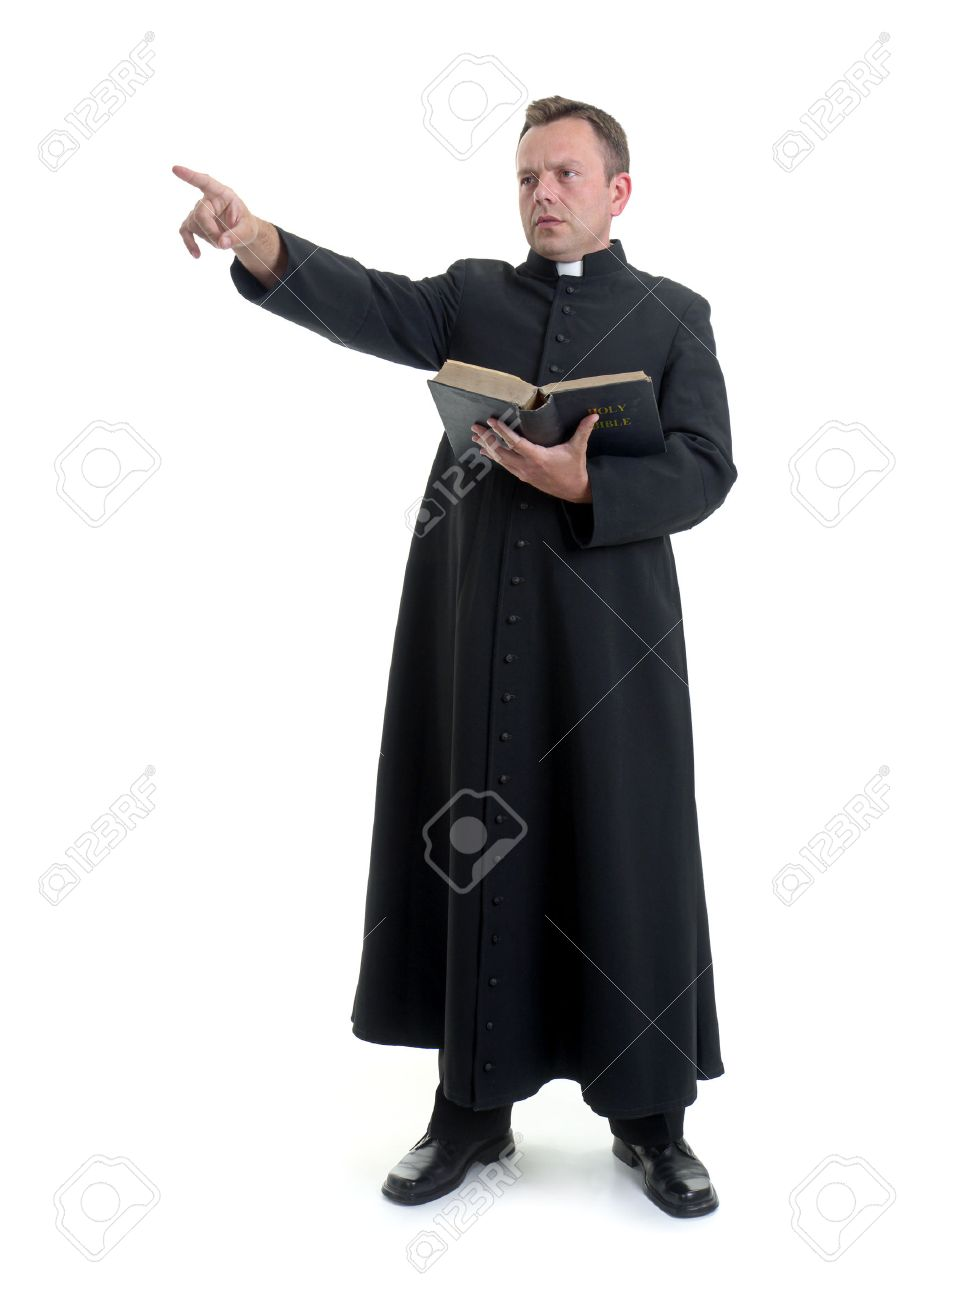 Catholic priest preaching holding open the Bible book shot on white Stock Photo - 27516952